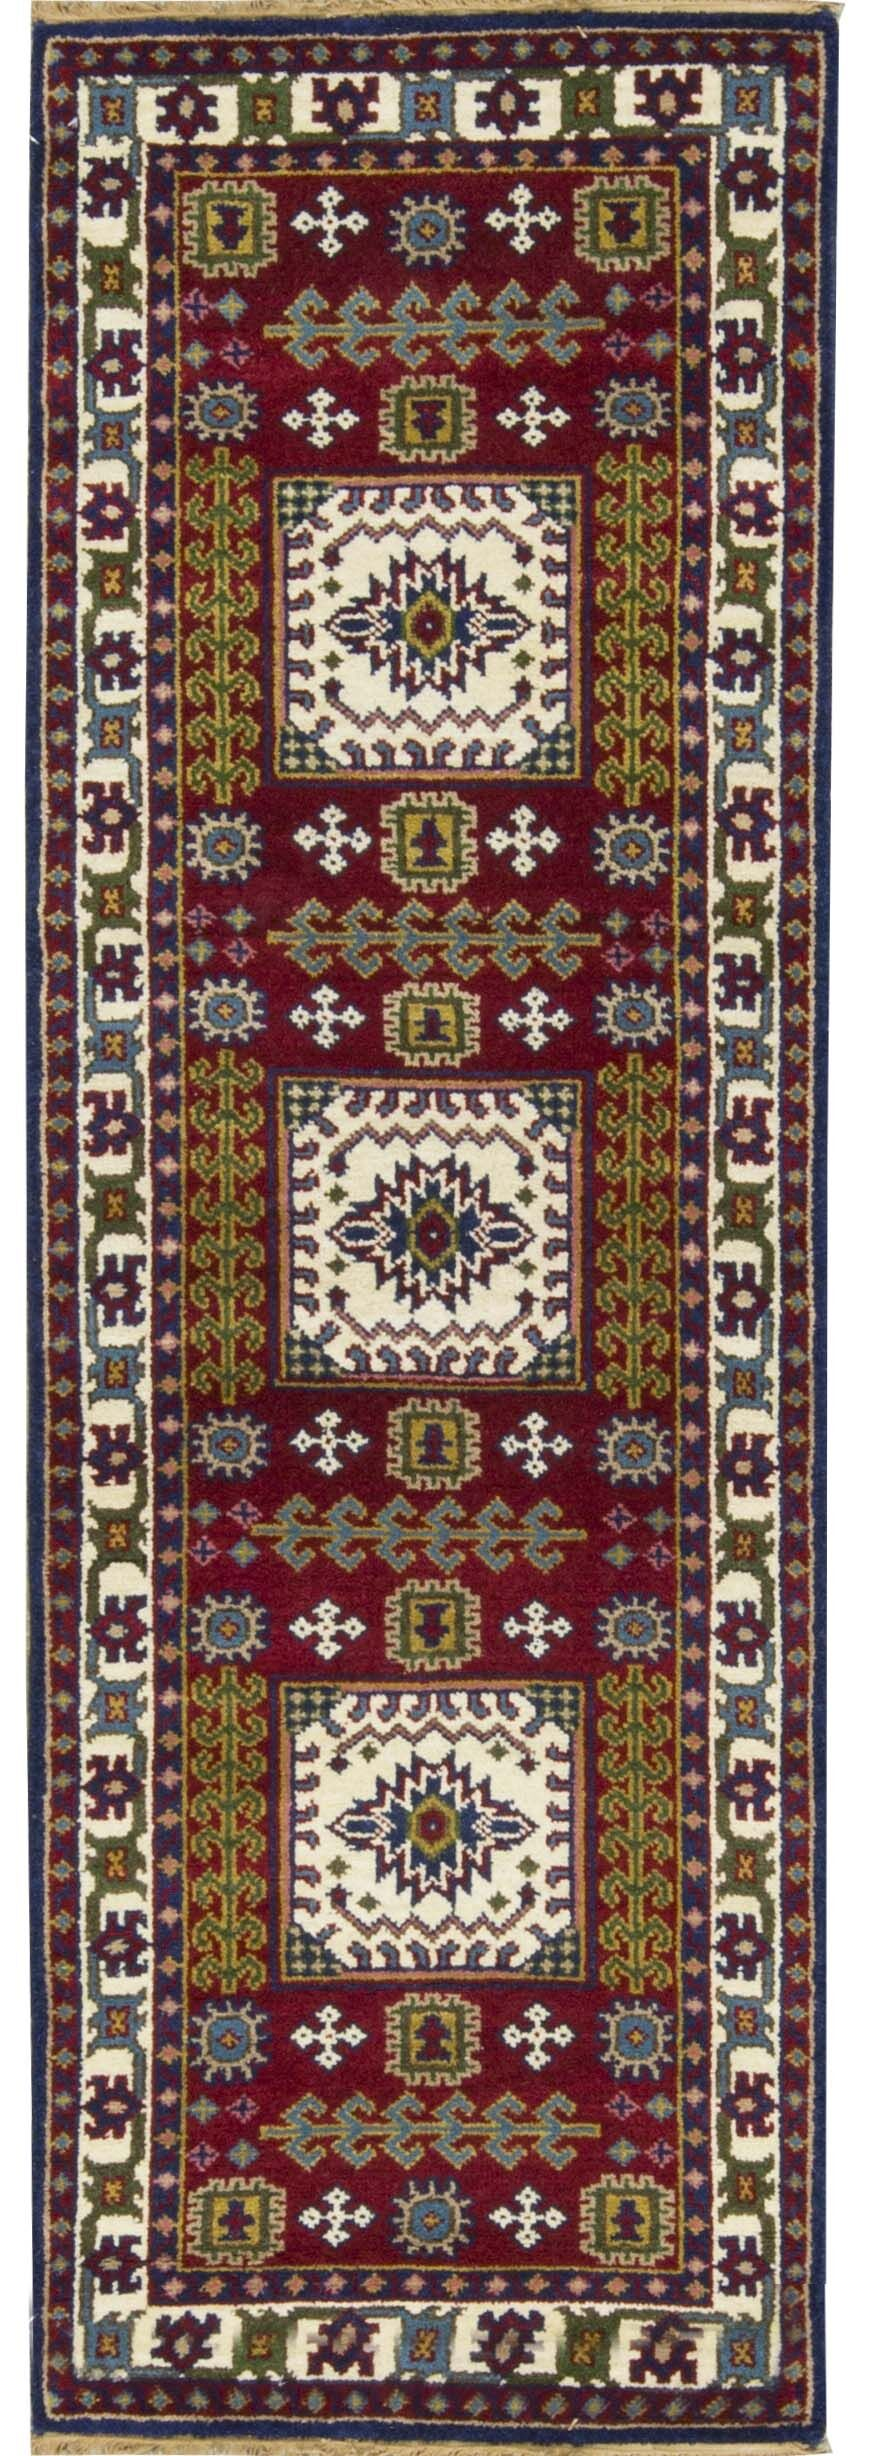 One-of-a-Kind Kazak Hand-Knotted Wool Red/Ivory Indoor Area Rug